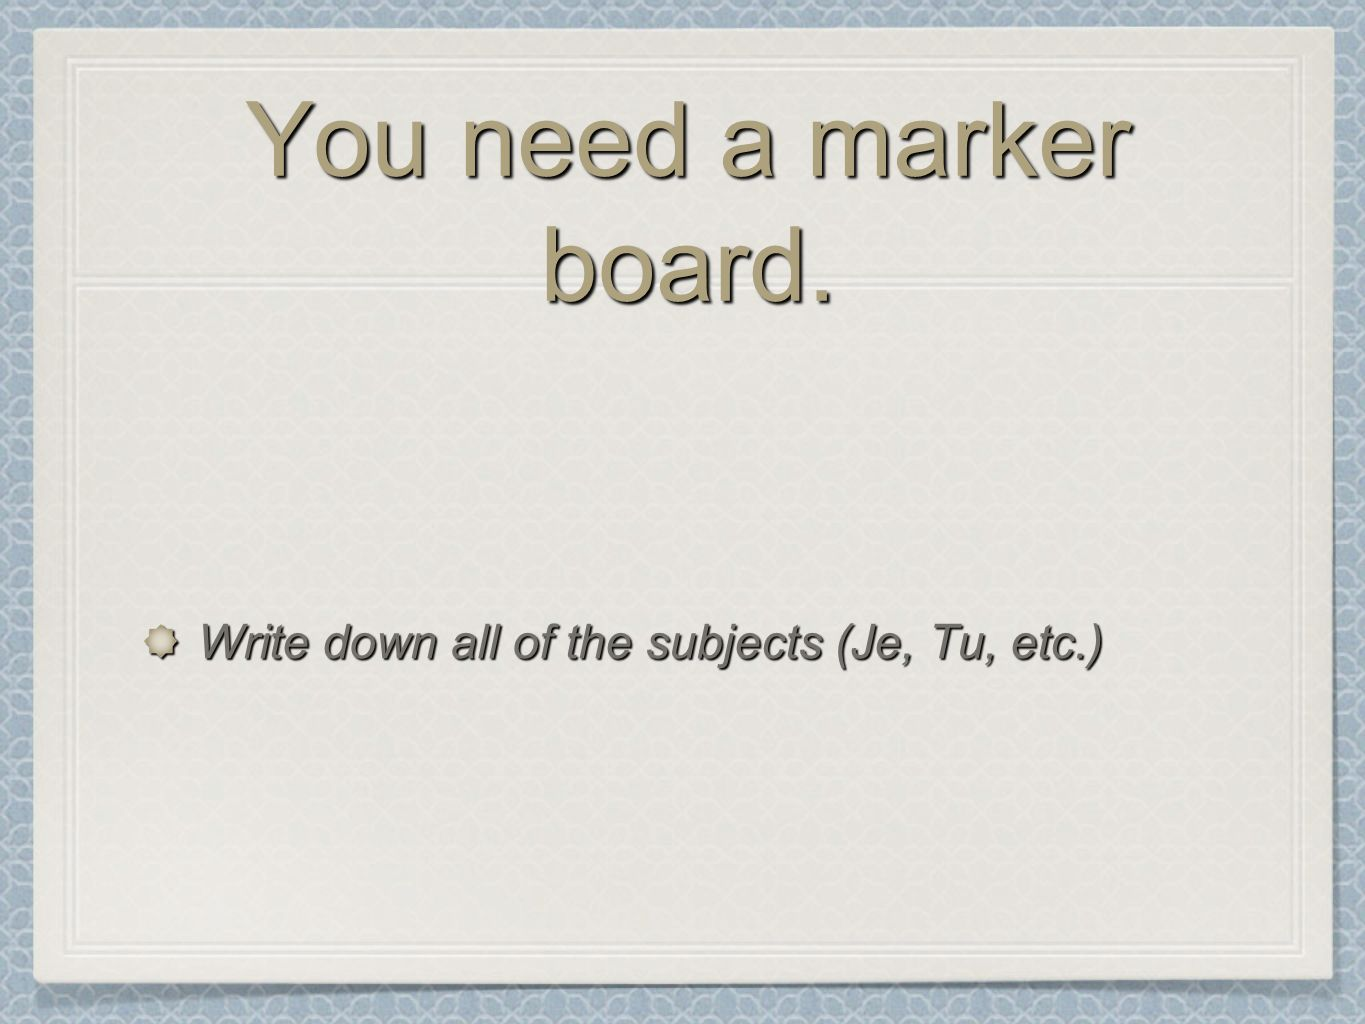 You need a marker board. Write down all of the subjects (Je, Tu, etc.)